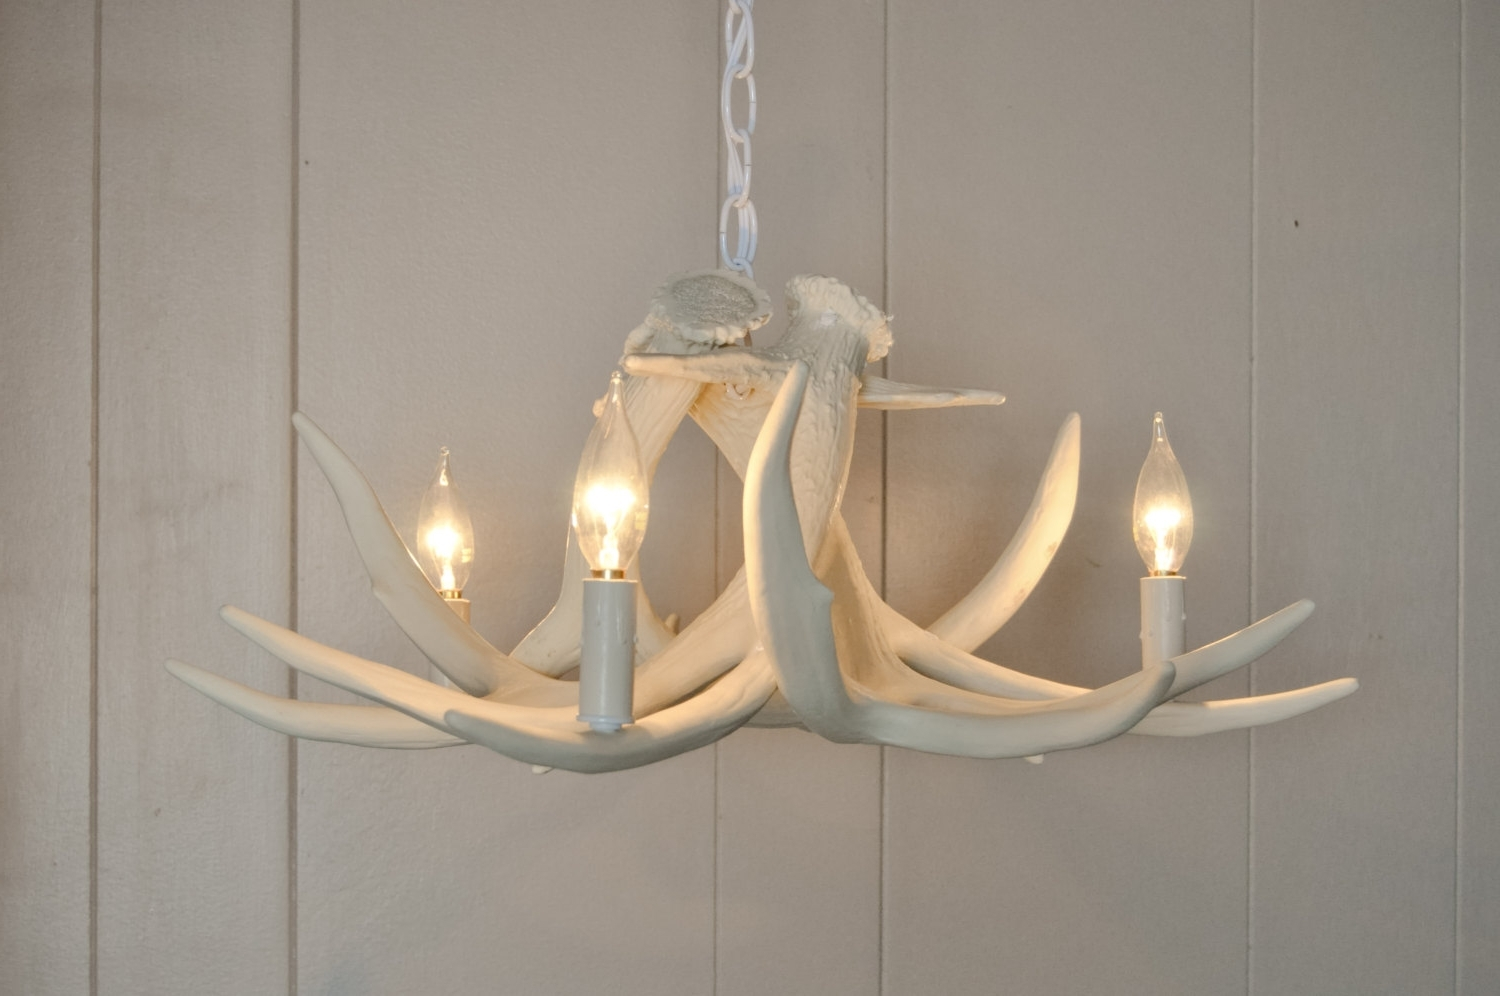 Turquoise Antler Chandeliers Intended For Fashionable White Antler Chandelier – Nurani (View 10 of 15)